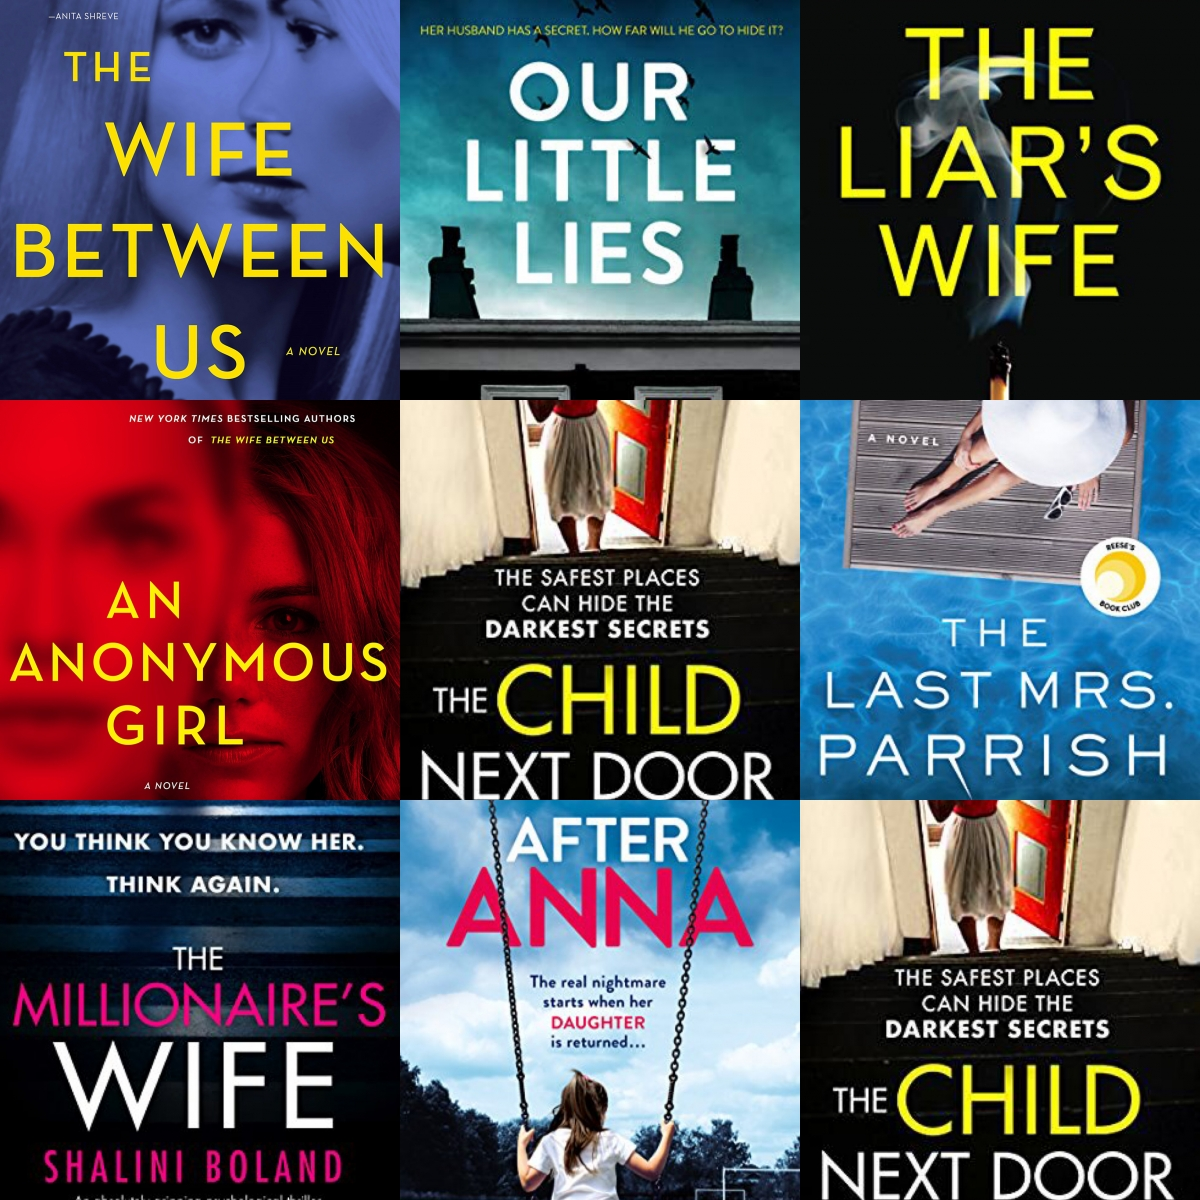 the best psychological thrillers 2019, Emily gemma book review, books similar to gone girl, books similar to behind closed doors, books similar to the woman in cabin 10, the wife between us, the last mrs Parrish book review